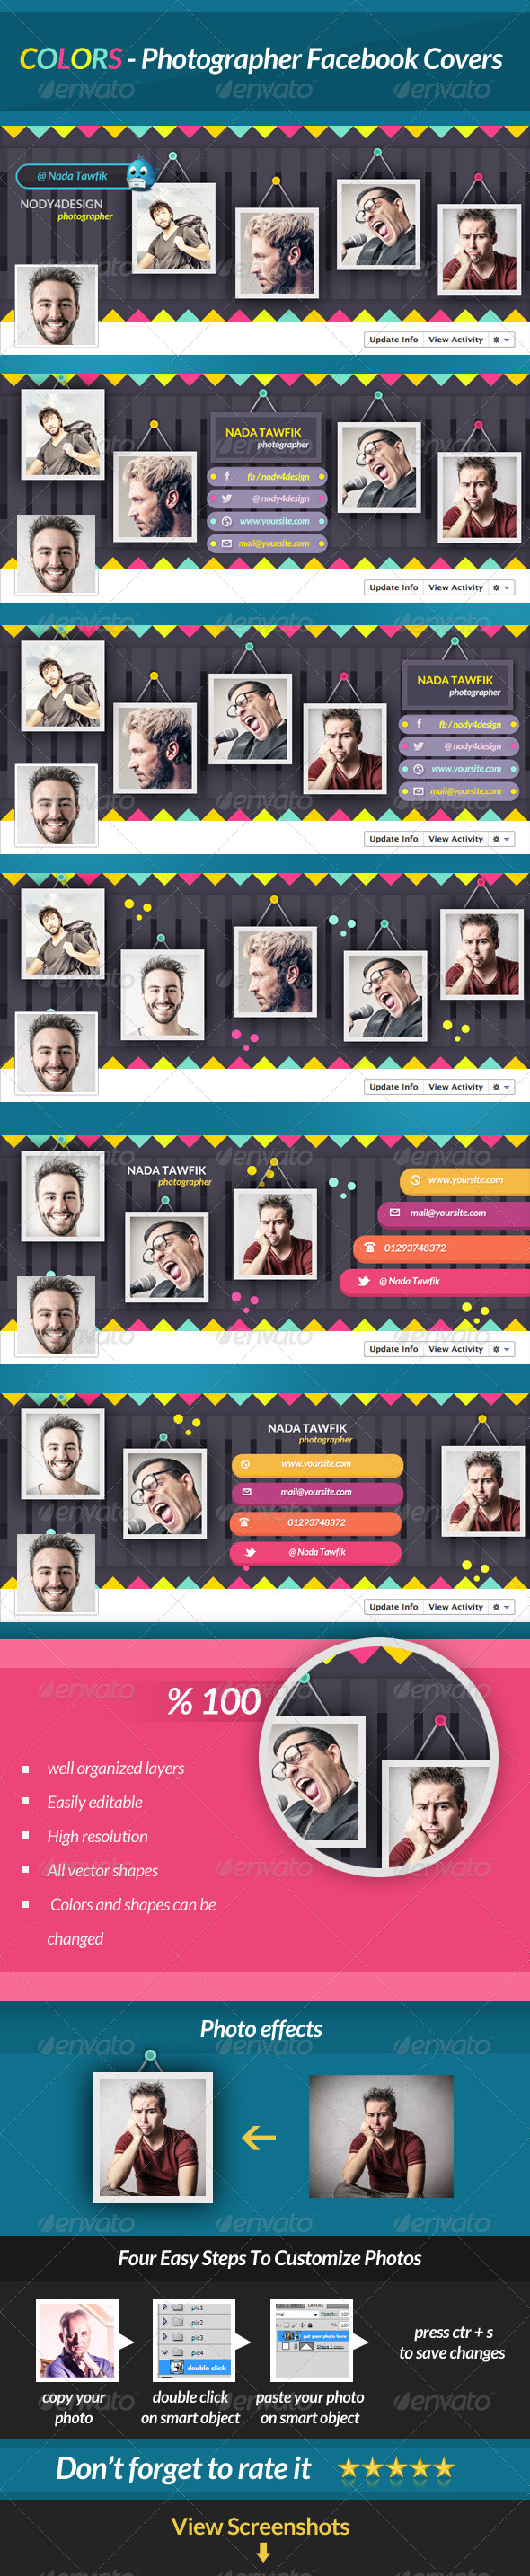 GraphicRiver Colors Photographer Facebook Covers 6783144